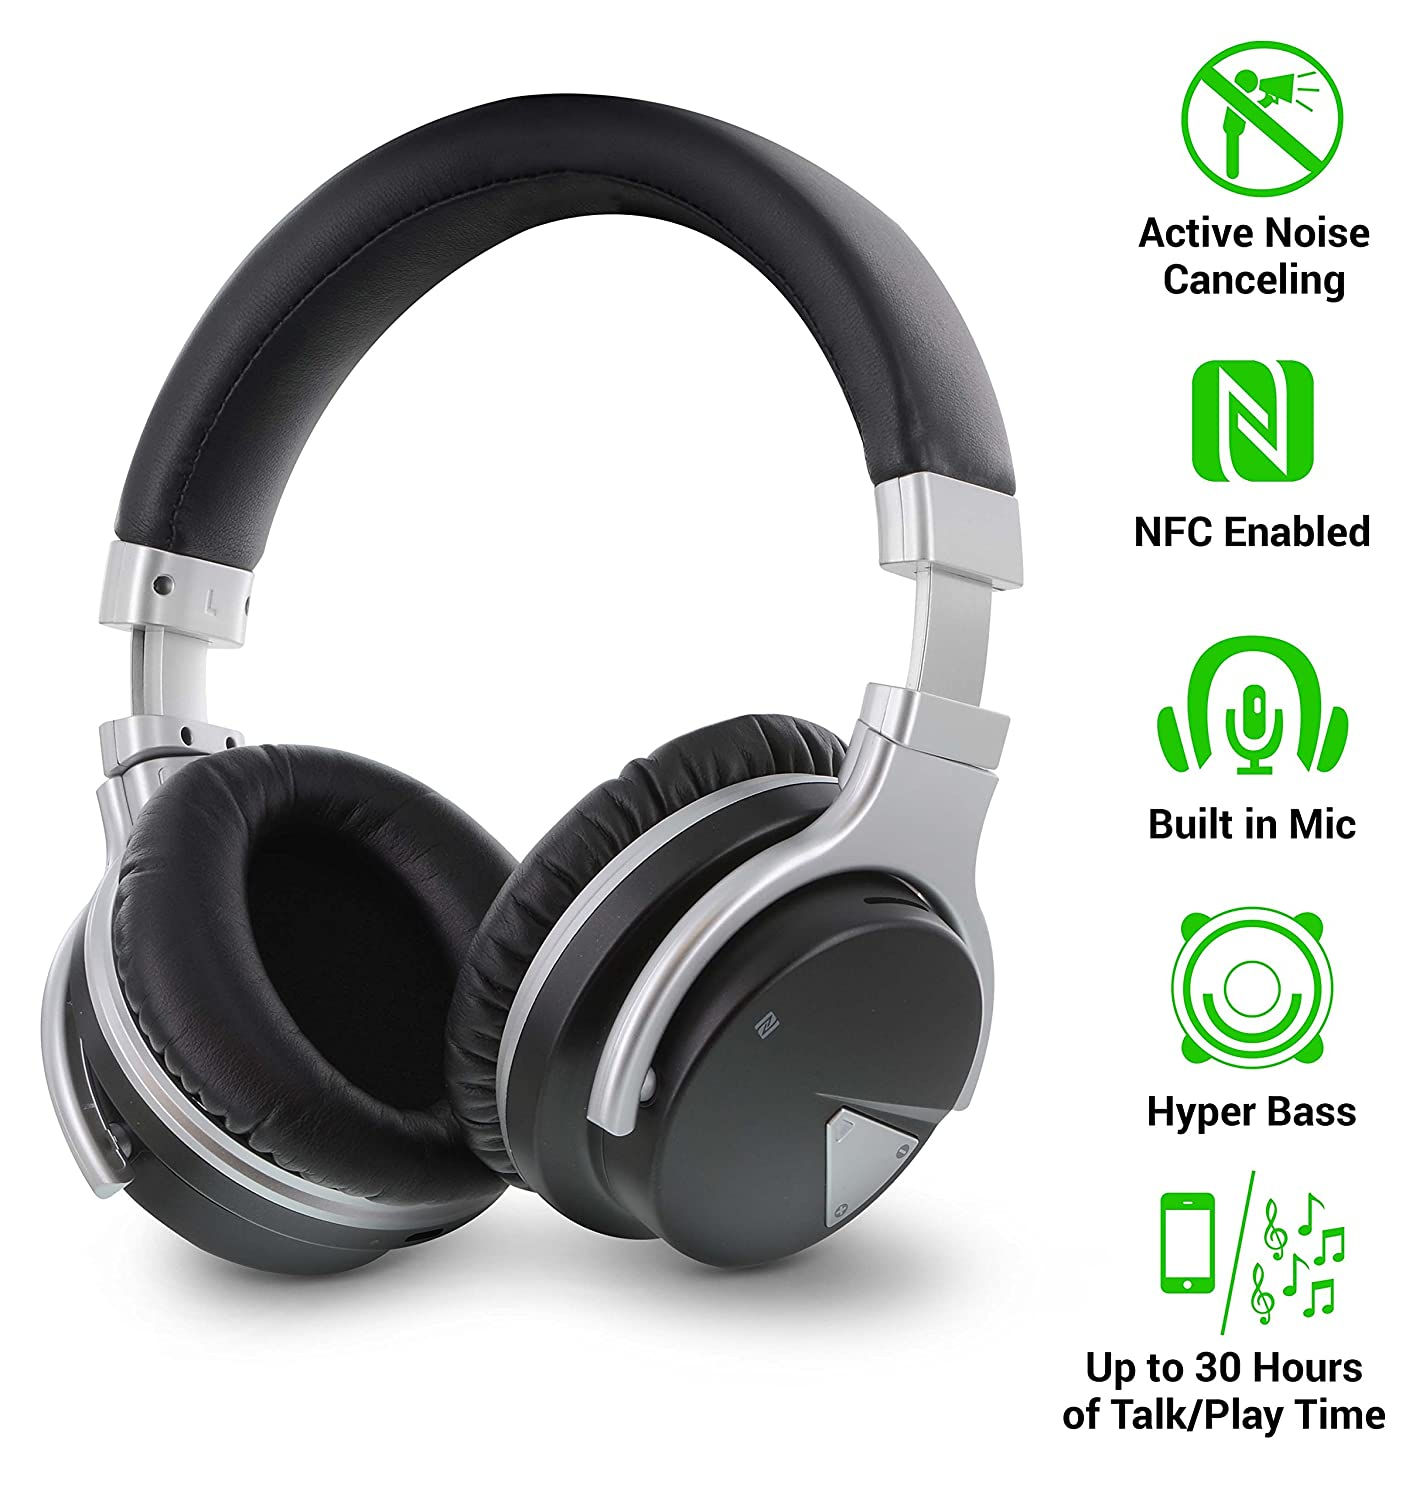 697ca341708 Amazon.com: Okra Rhythm JB500 Active Noise Cancelling Wireless Over-Ear  Stereo Headphones - Microphone, Volume, Play, Pause, Skip and Answer Call  Controls ...